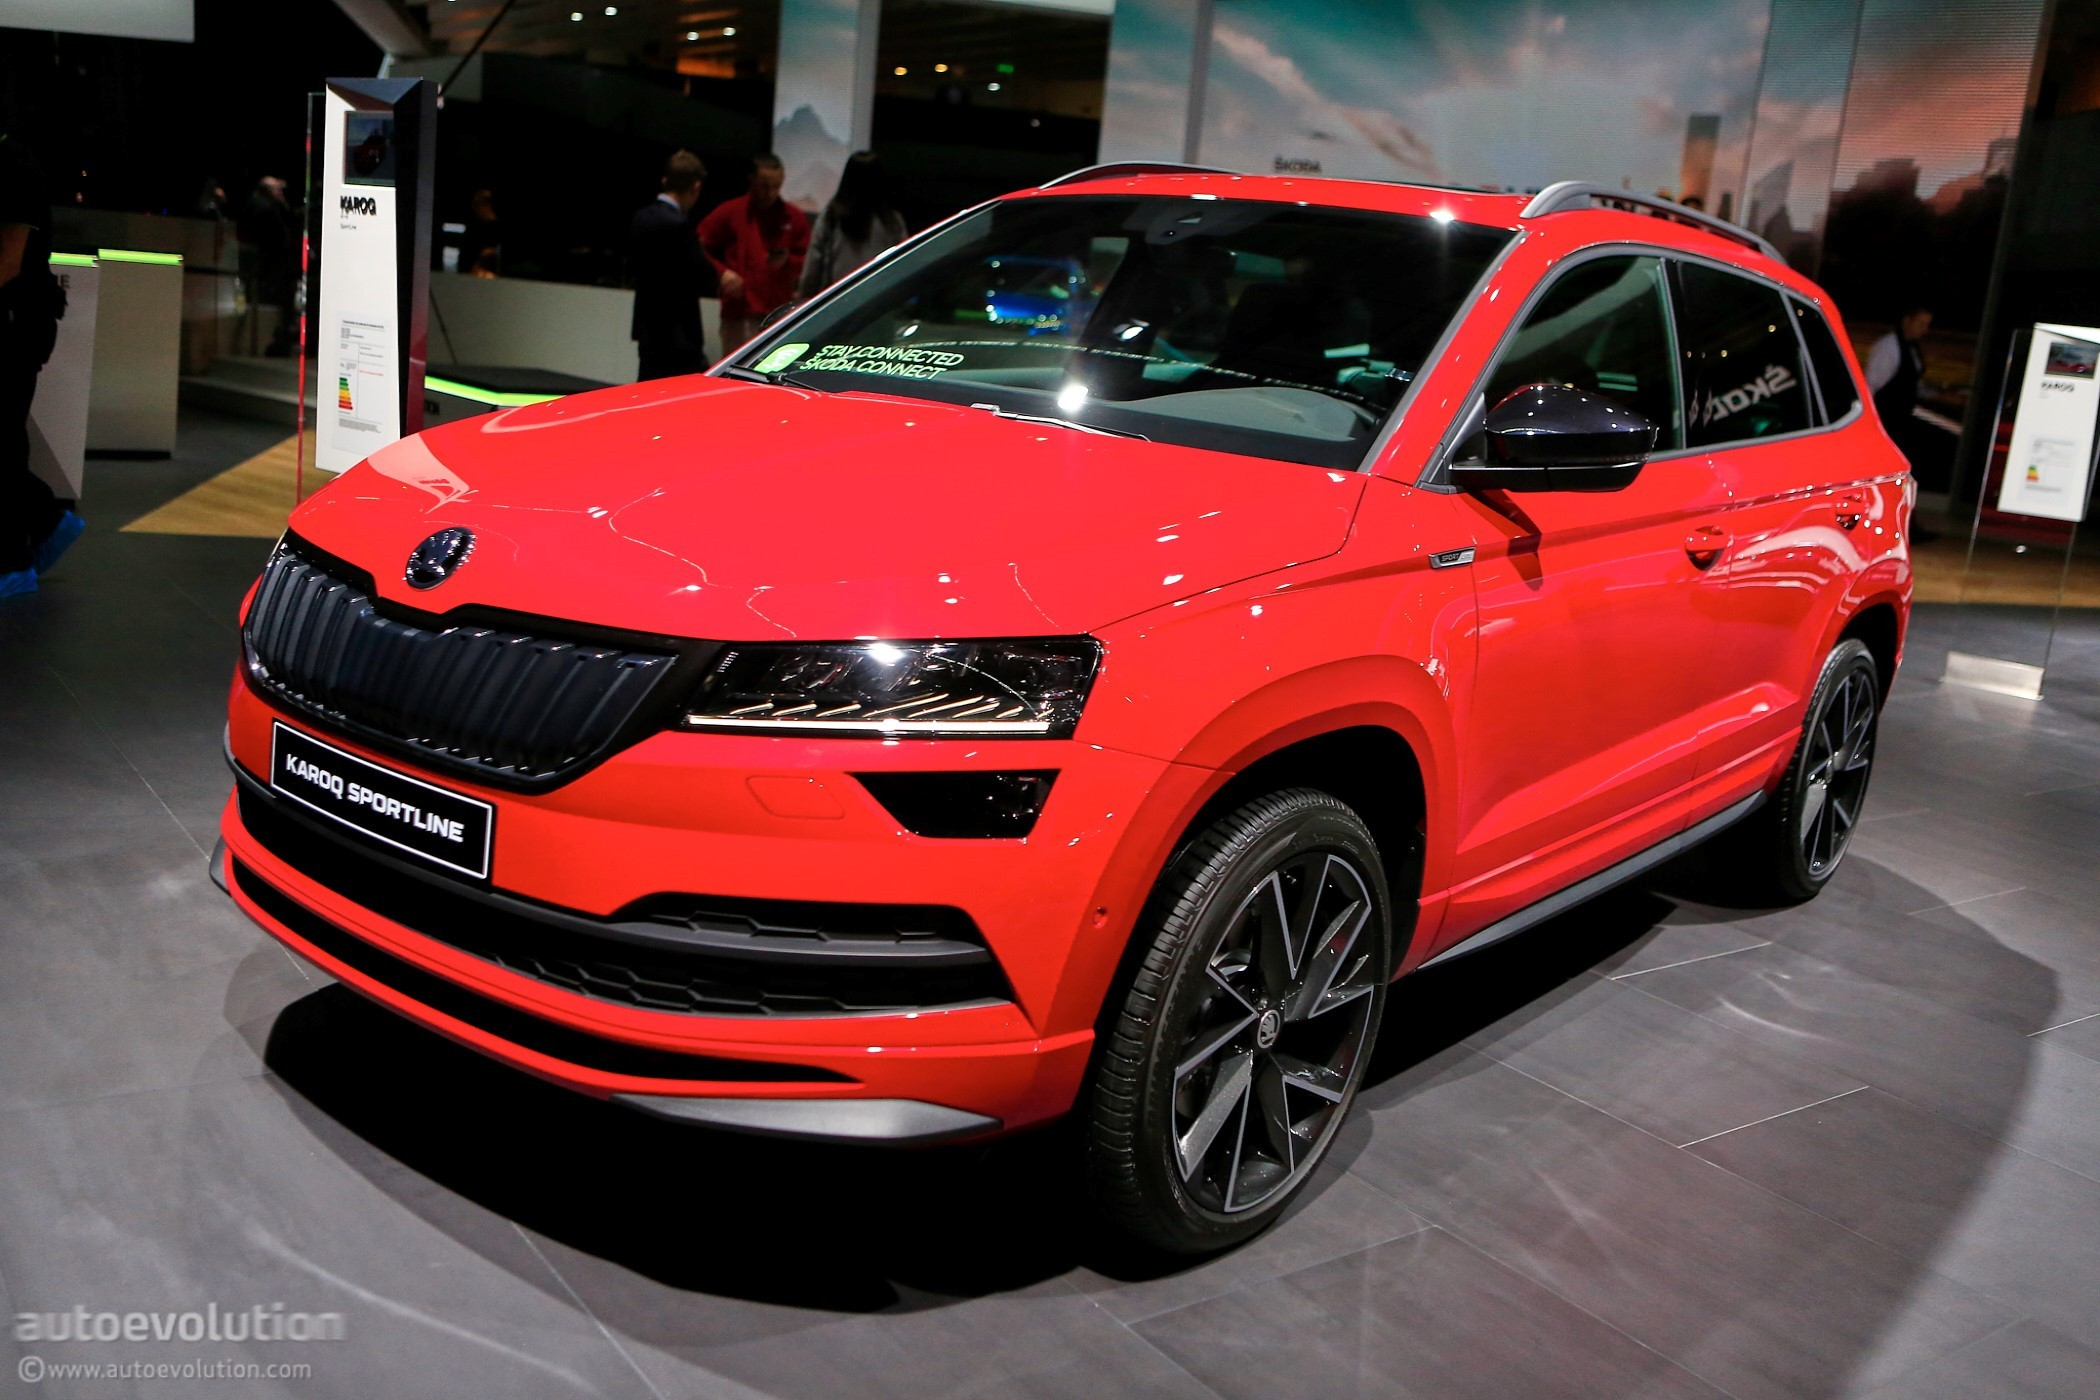 2019 Skoda Karoq Welcomes Scout, Sportline Models in Paris - autoevolution